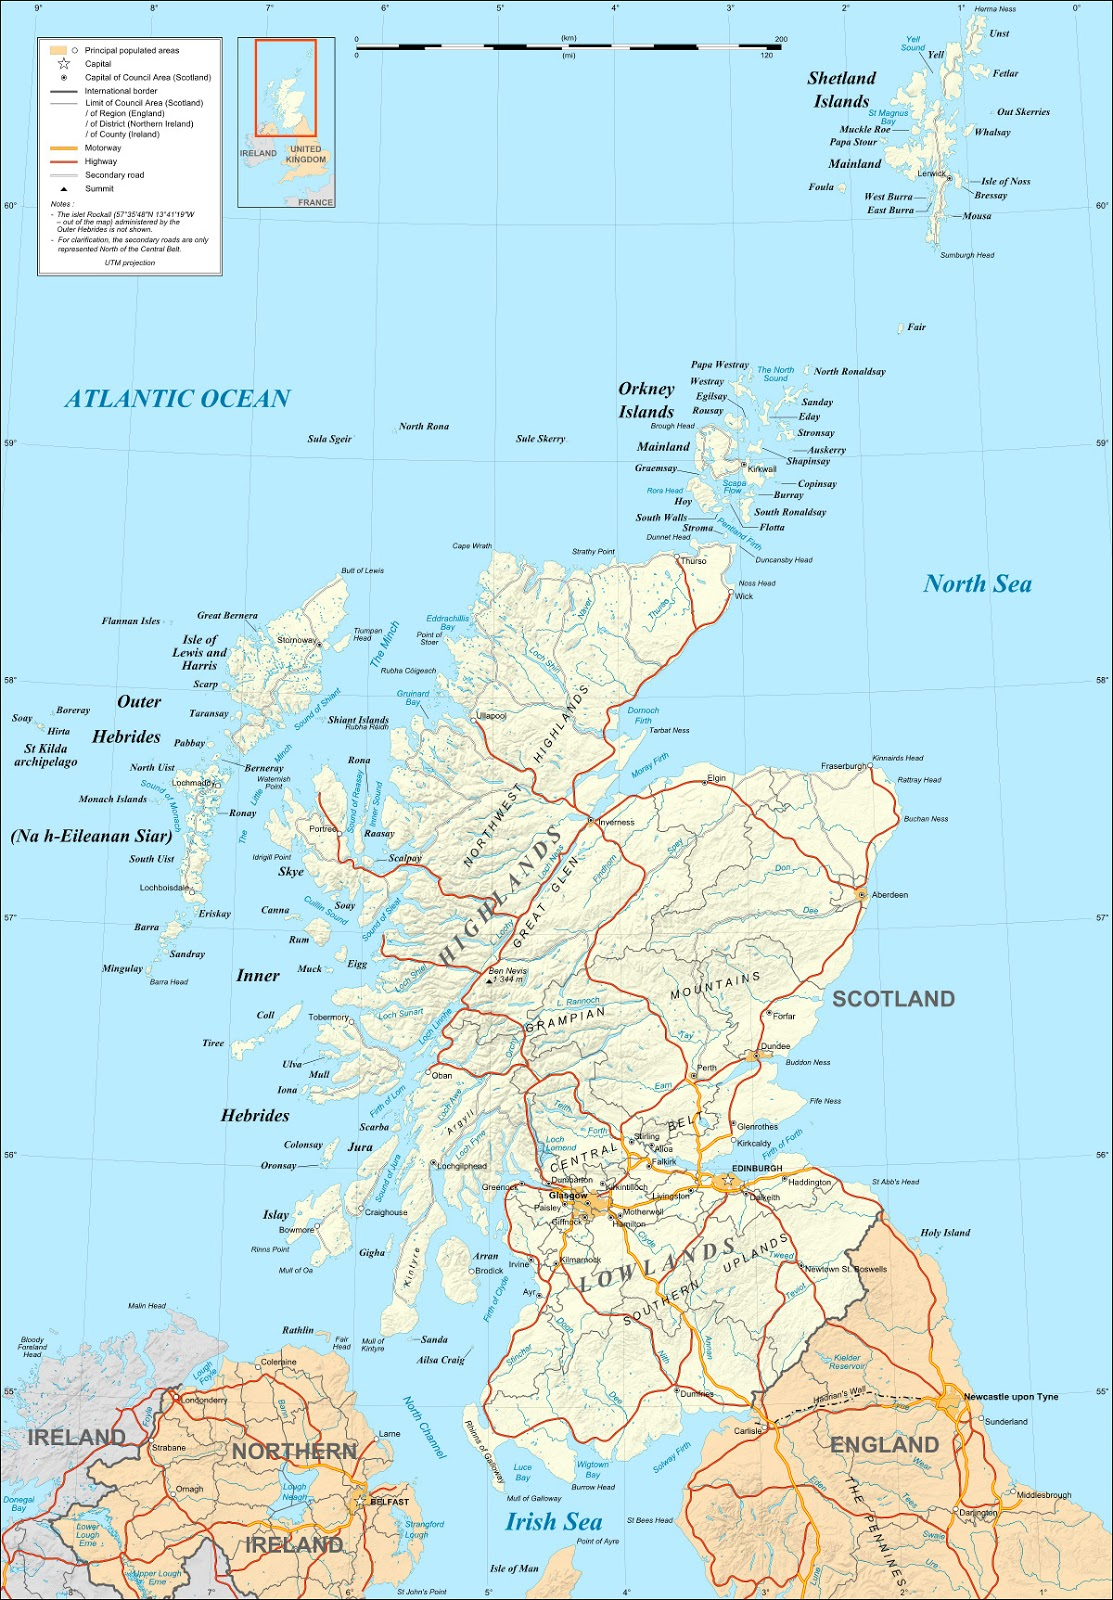 Map of Scotland. On September 18, 2014, Scotland will vote on whether to leave the UK and become an independent country.